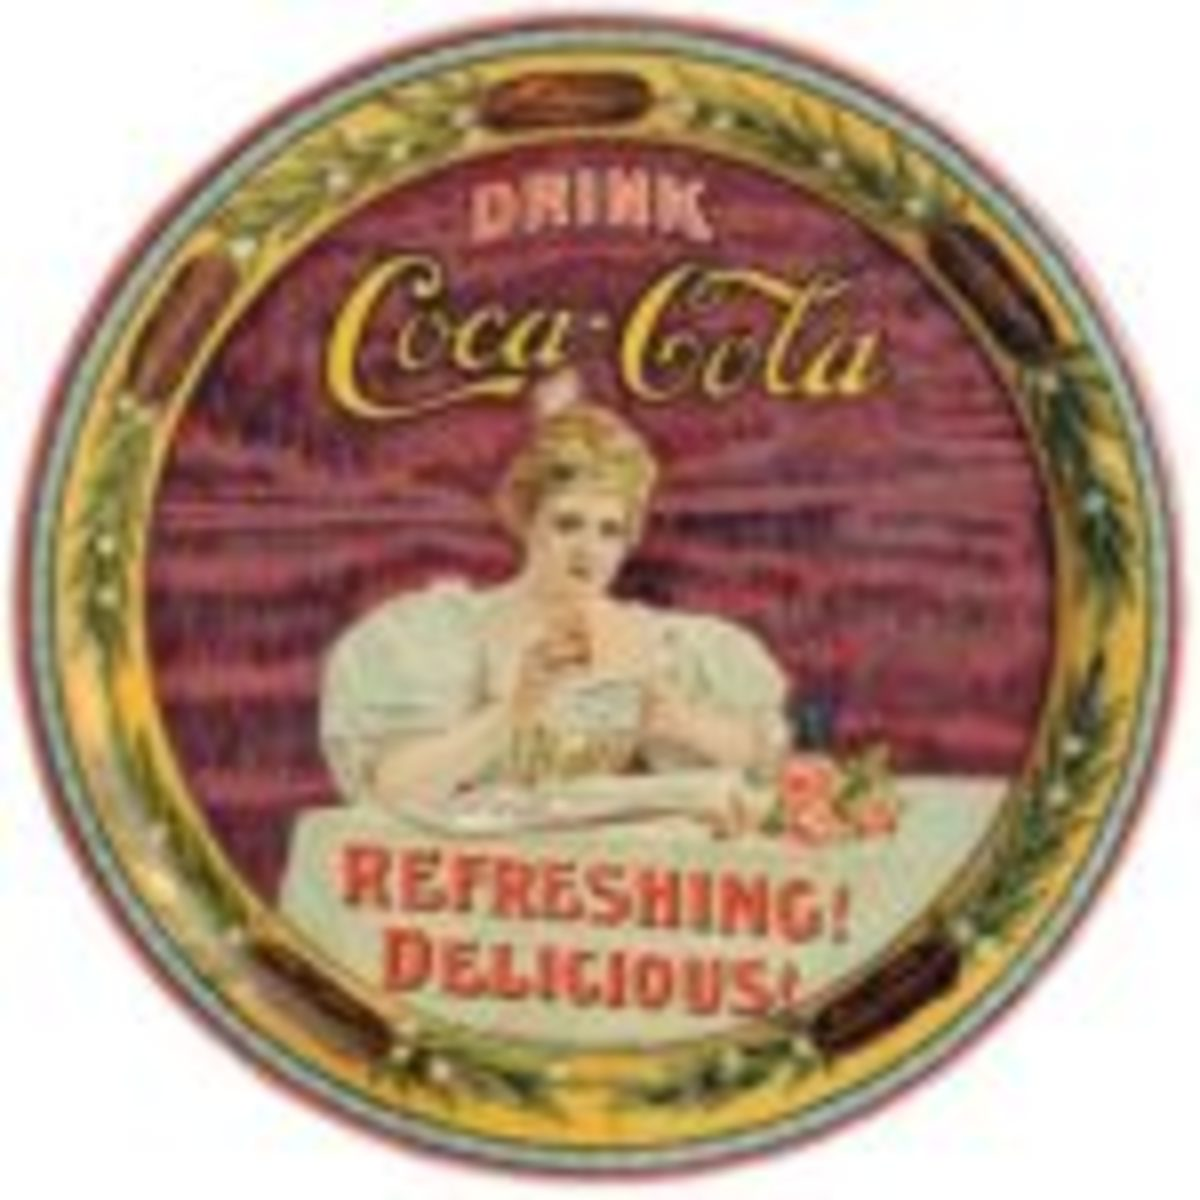 Figure 2: Original Coca-Cola tray as appearing in The Martin Guide to Coca-Cola Memorabilia (used with permission)